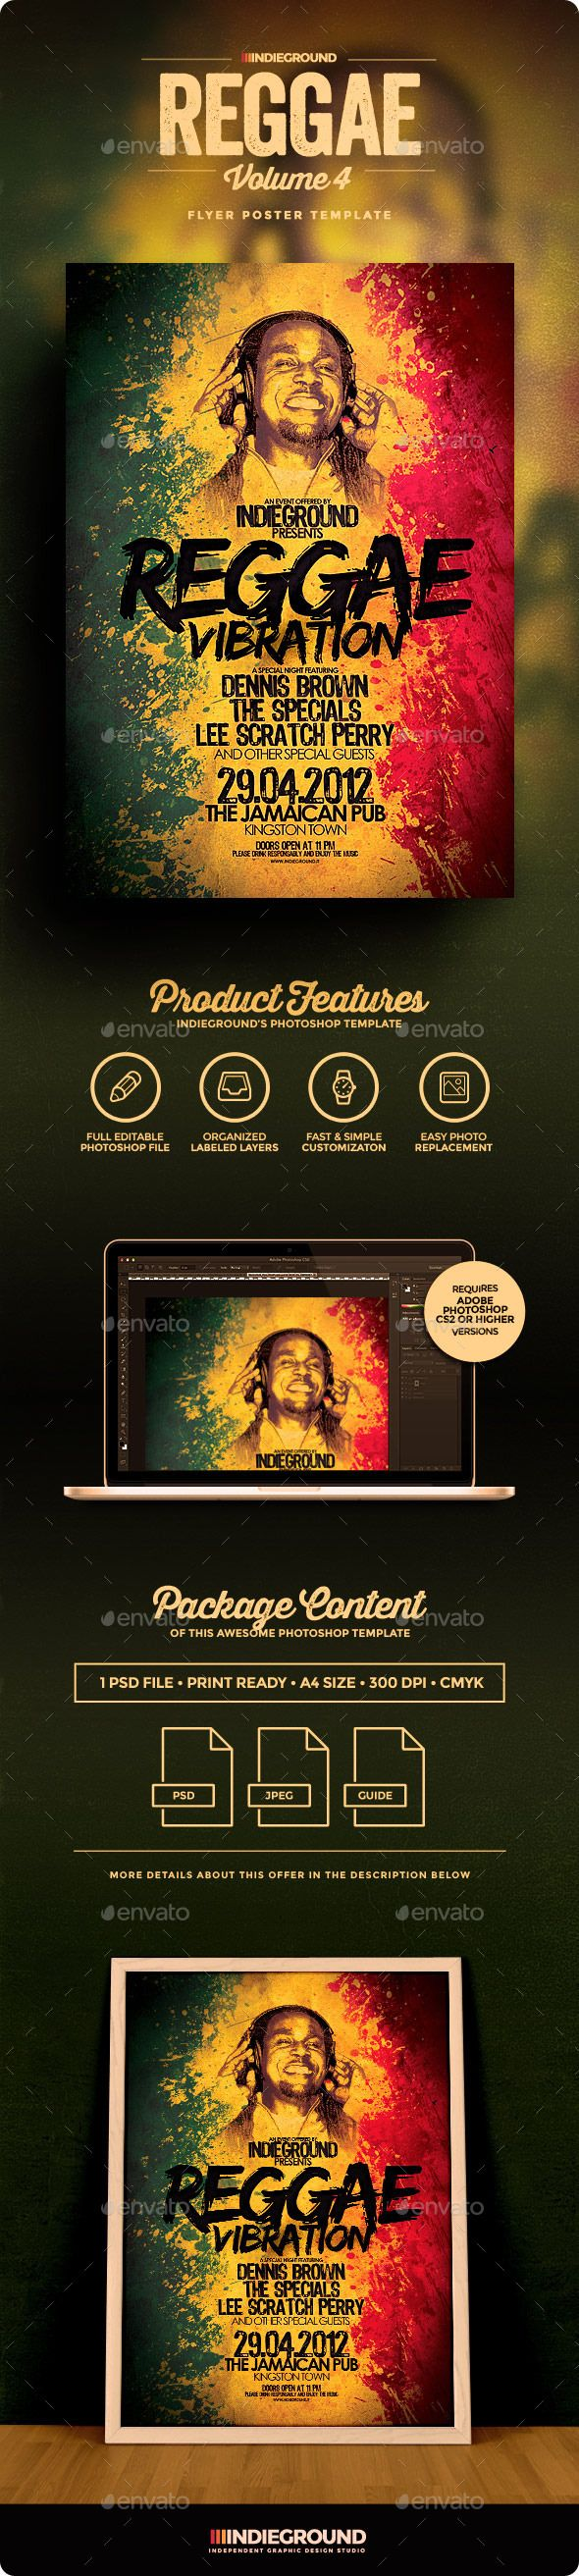 business party invitation letter templates%0A Reggae Flyer Poster Vol     Business Flyer TemplatesBusiness